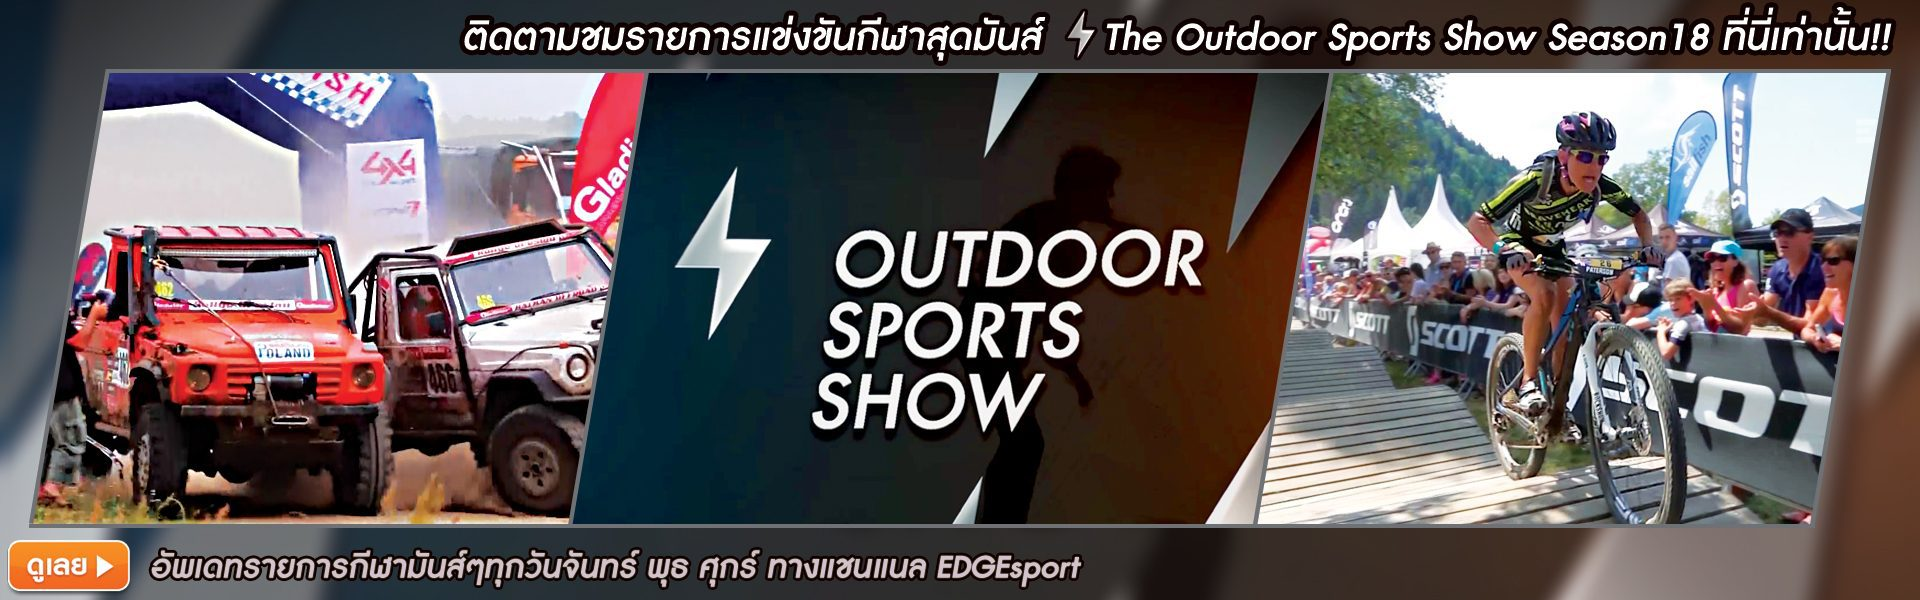 รายการ The Outdoor Sports Show Season18 : EP.8 [FULL]